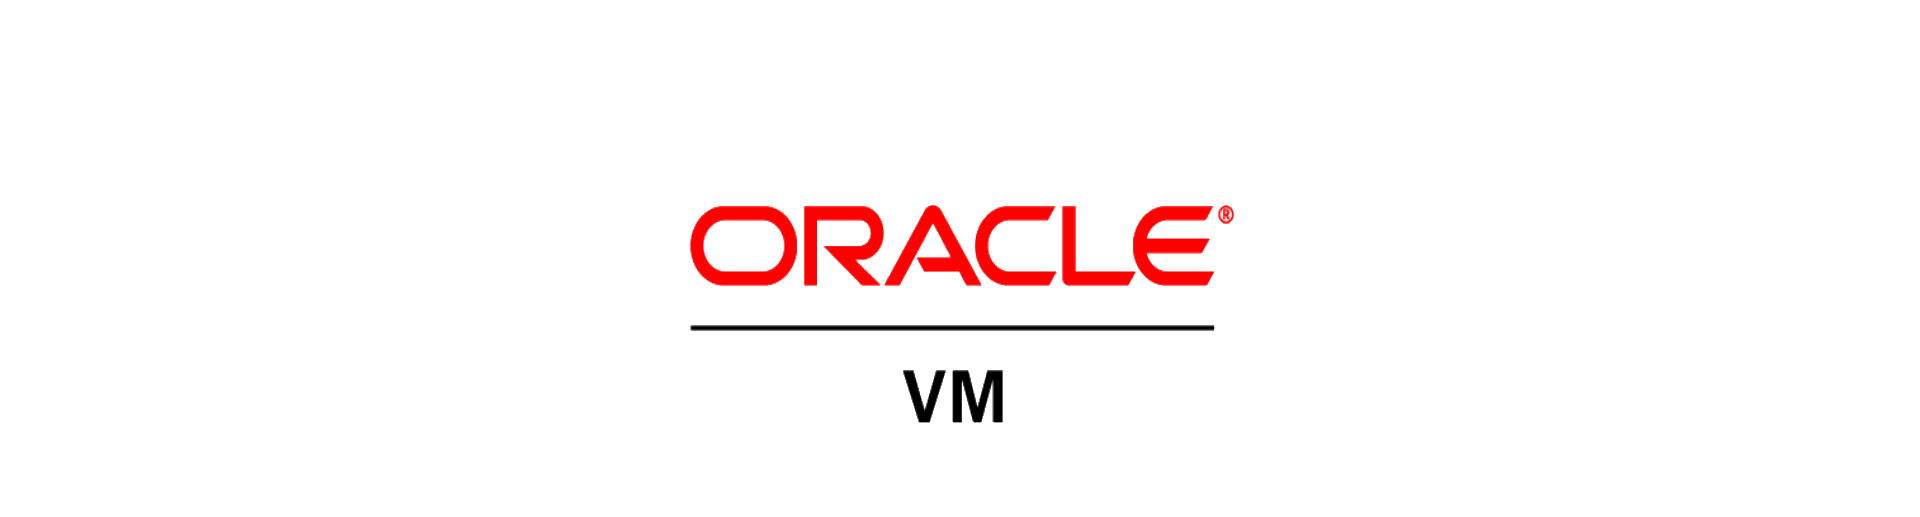 Oracle VM 3 4 6 :Part 2 – OVM Manager – Ron's Blog